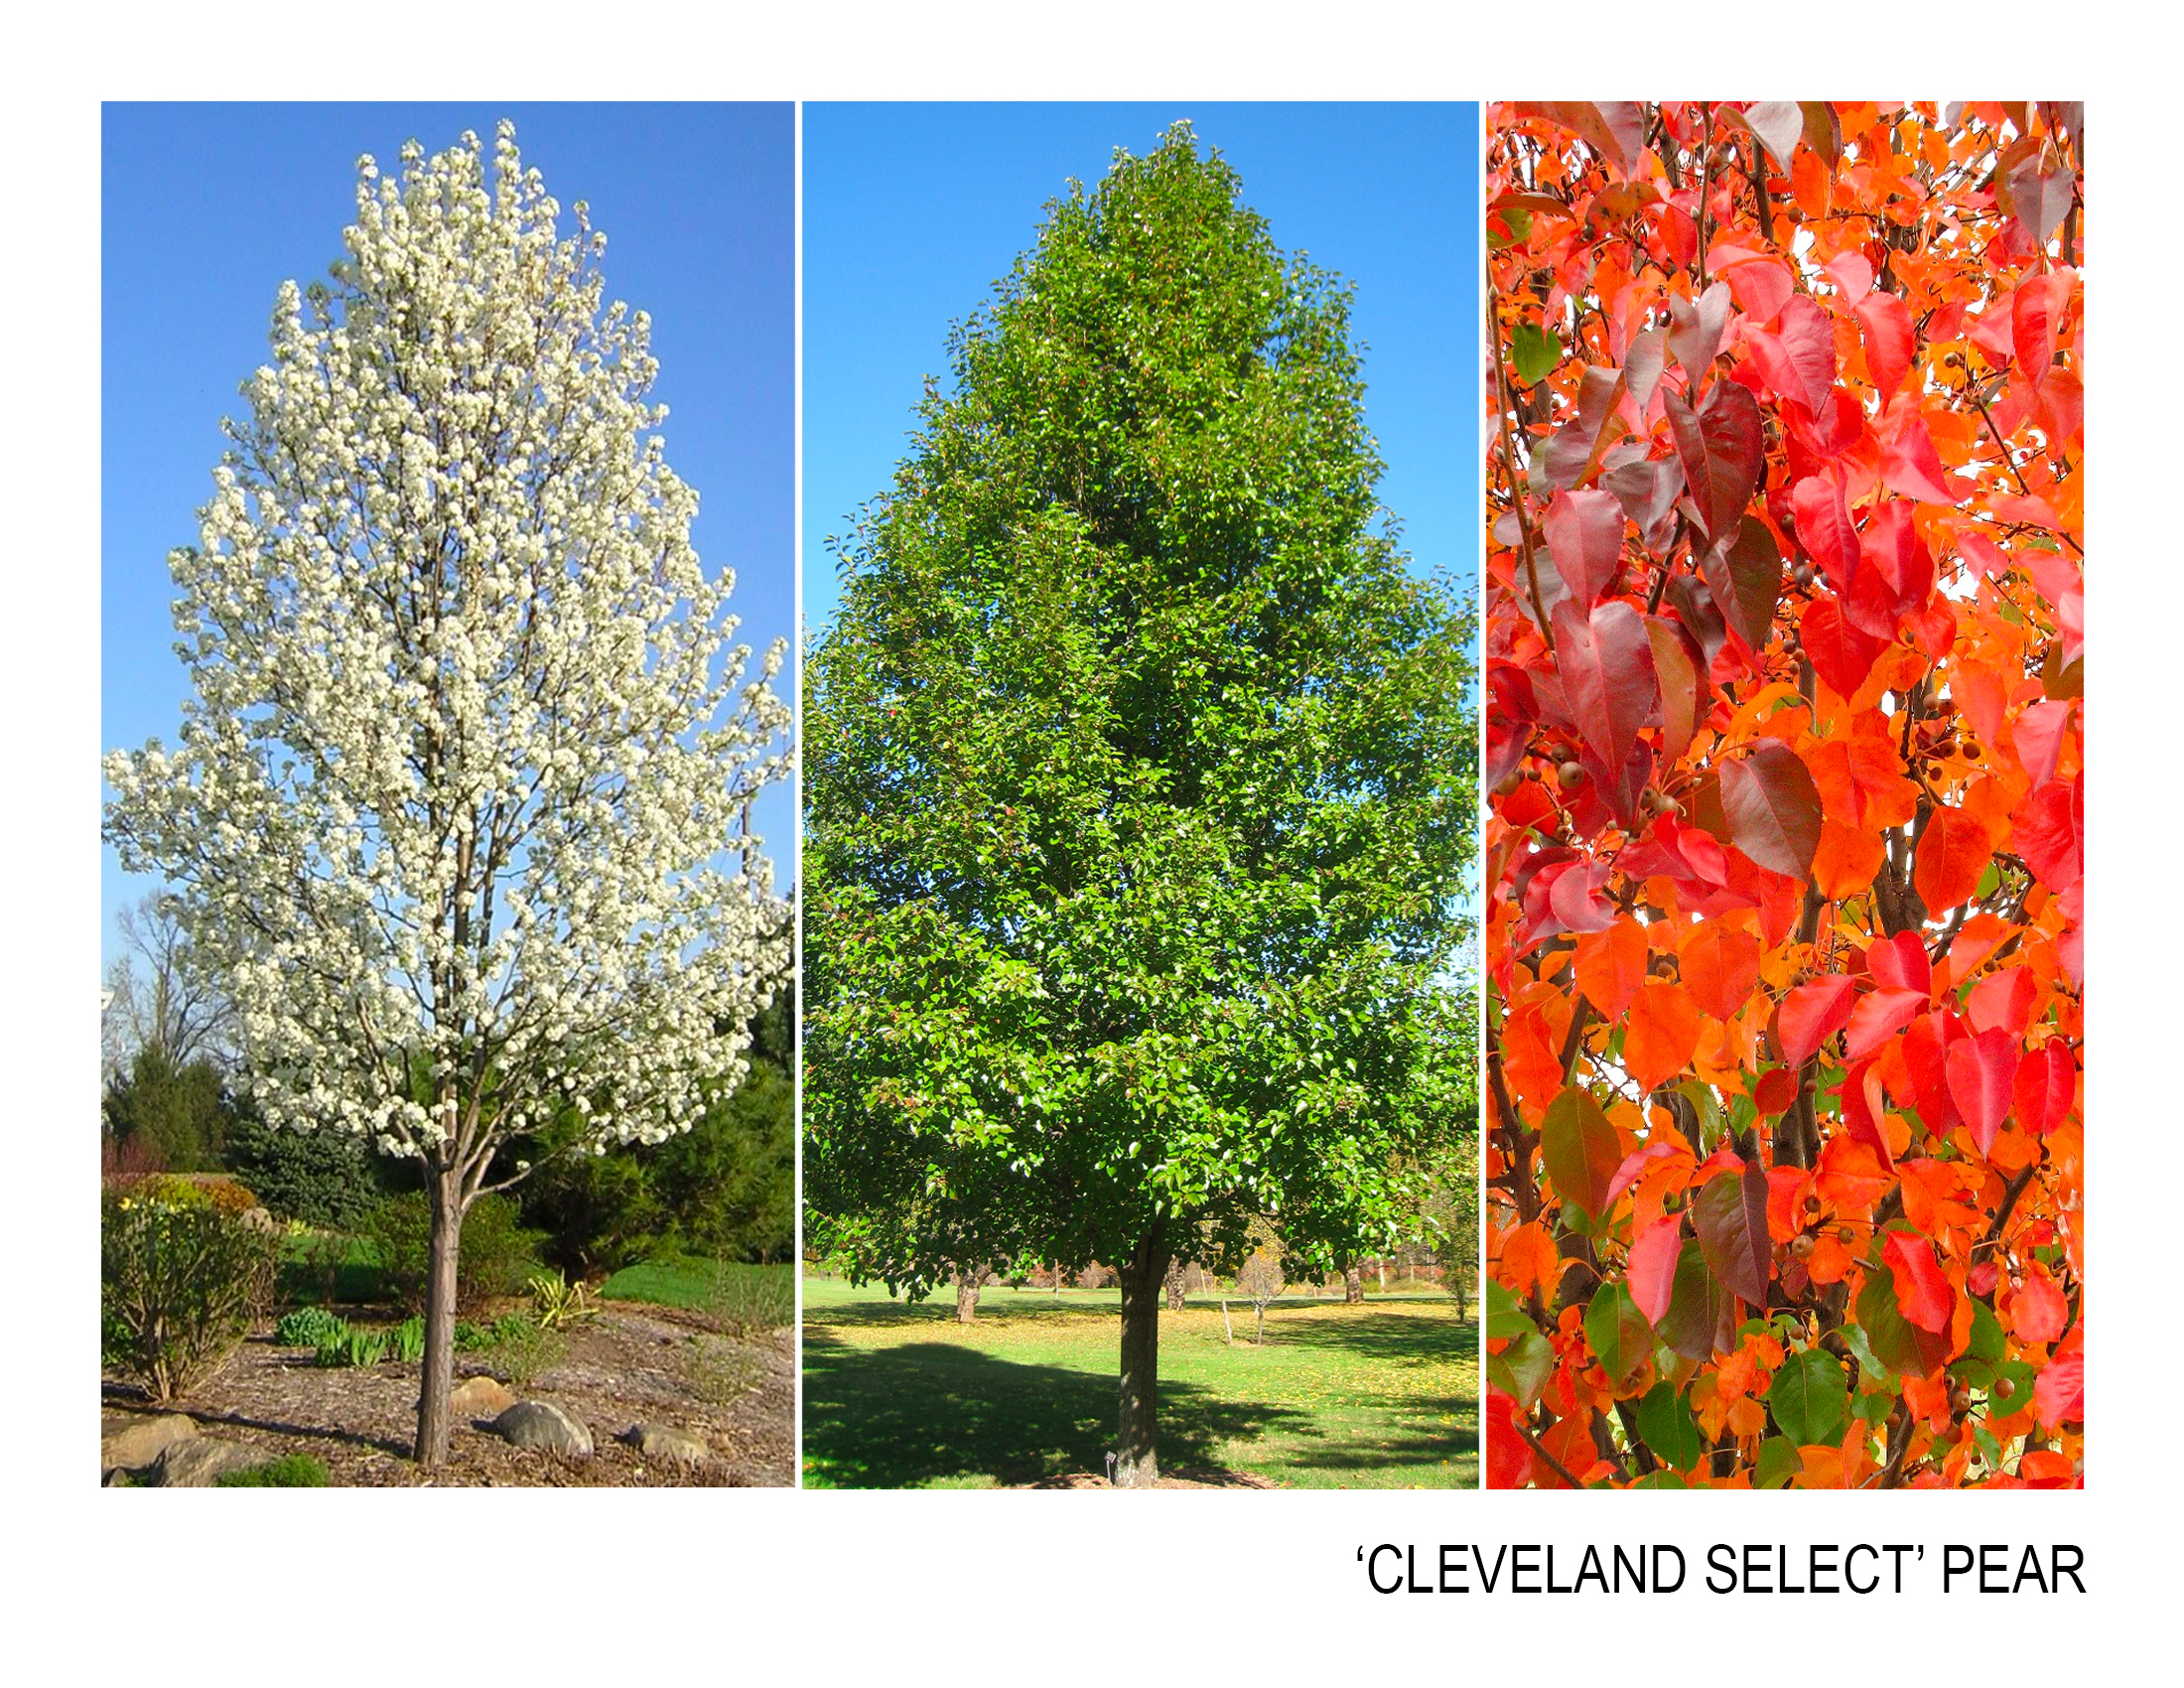 cleveland select pear.jpg